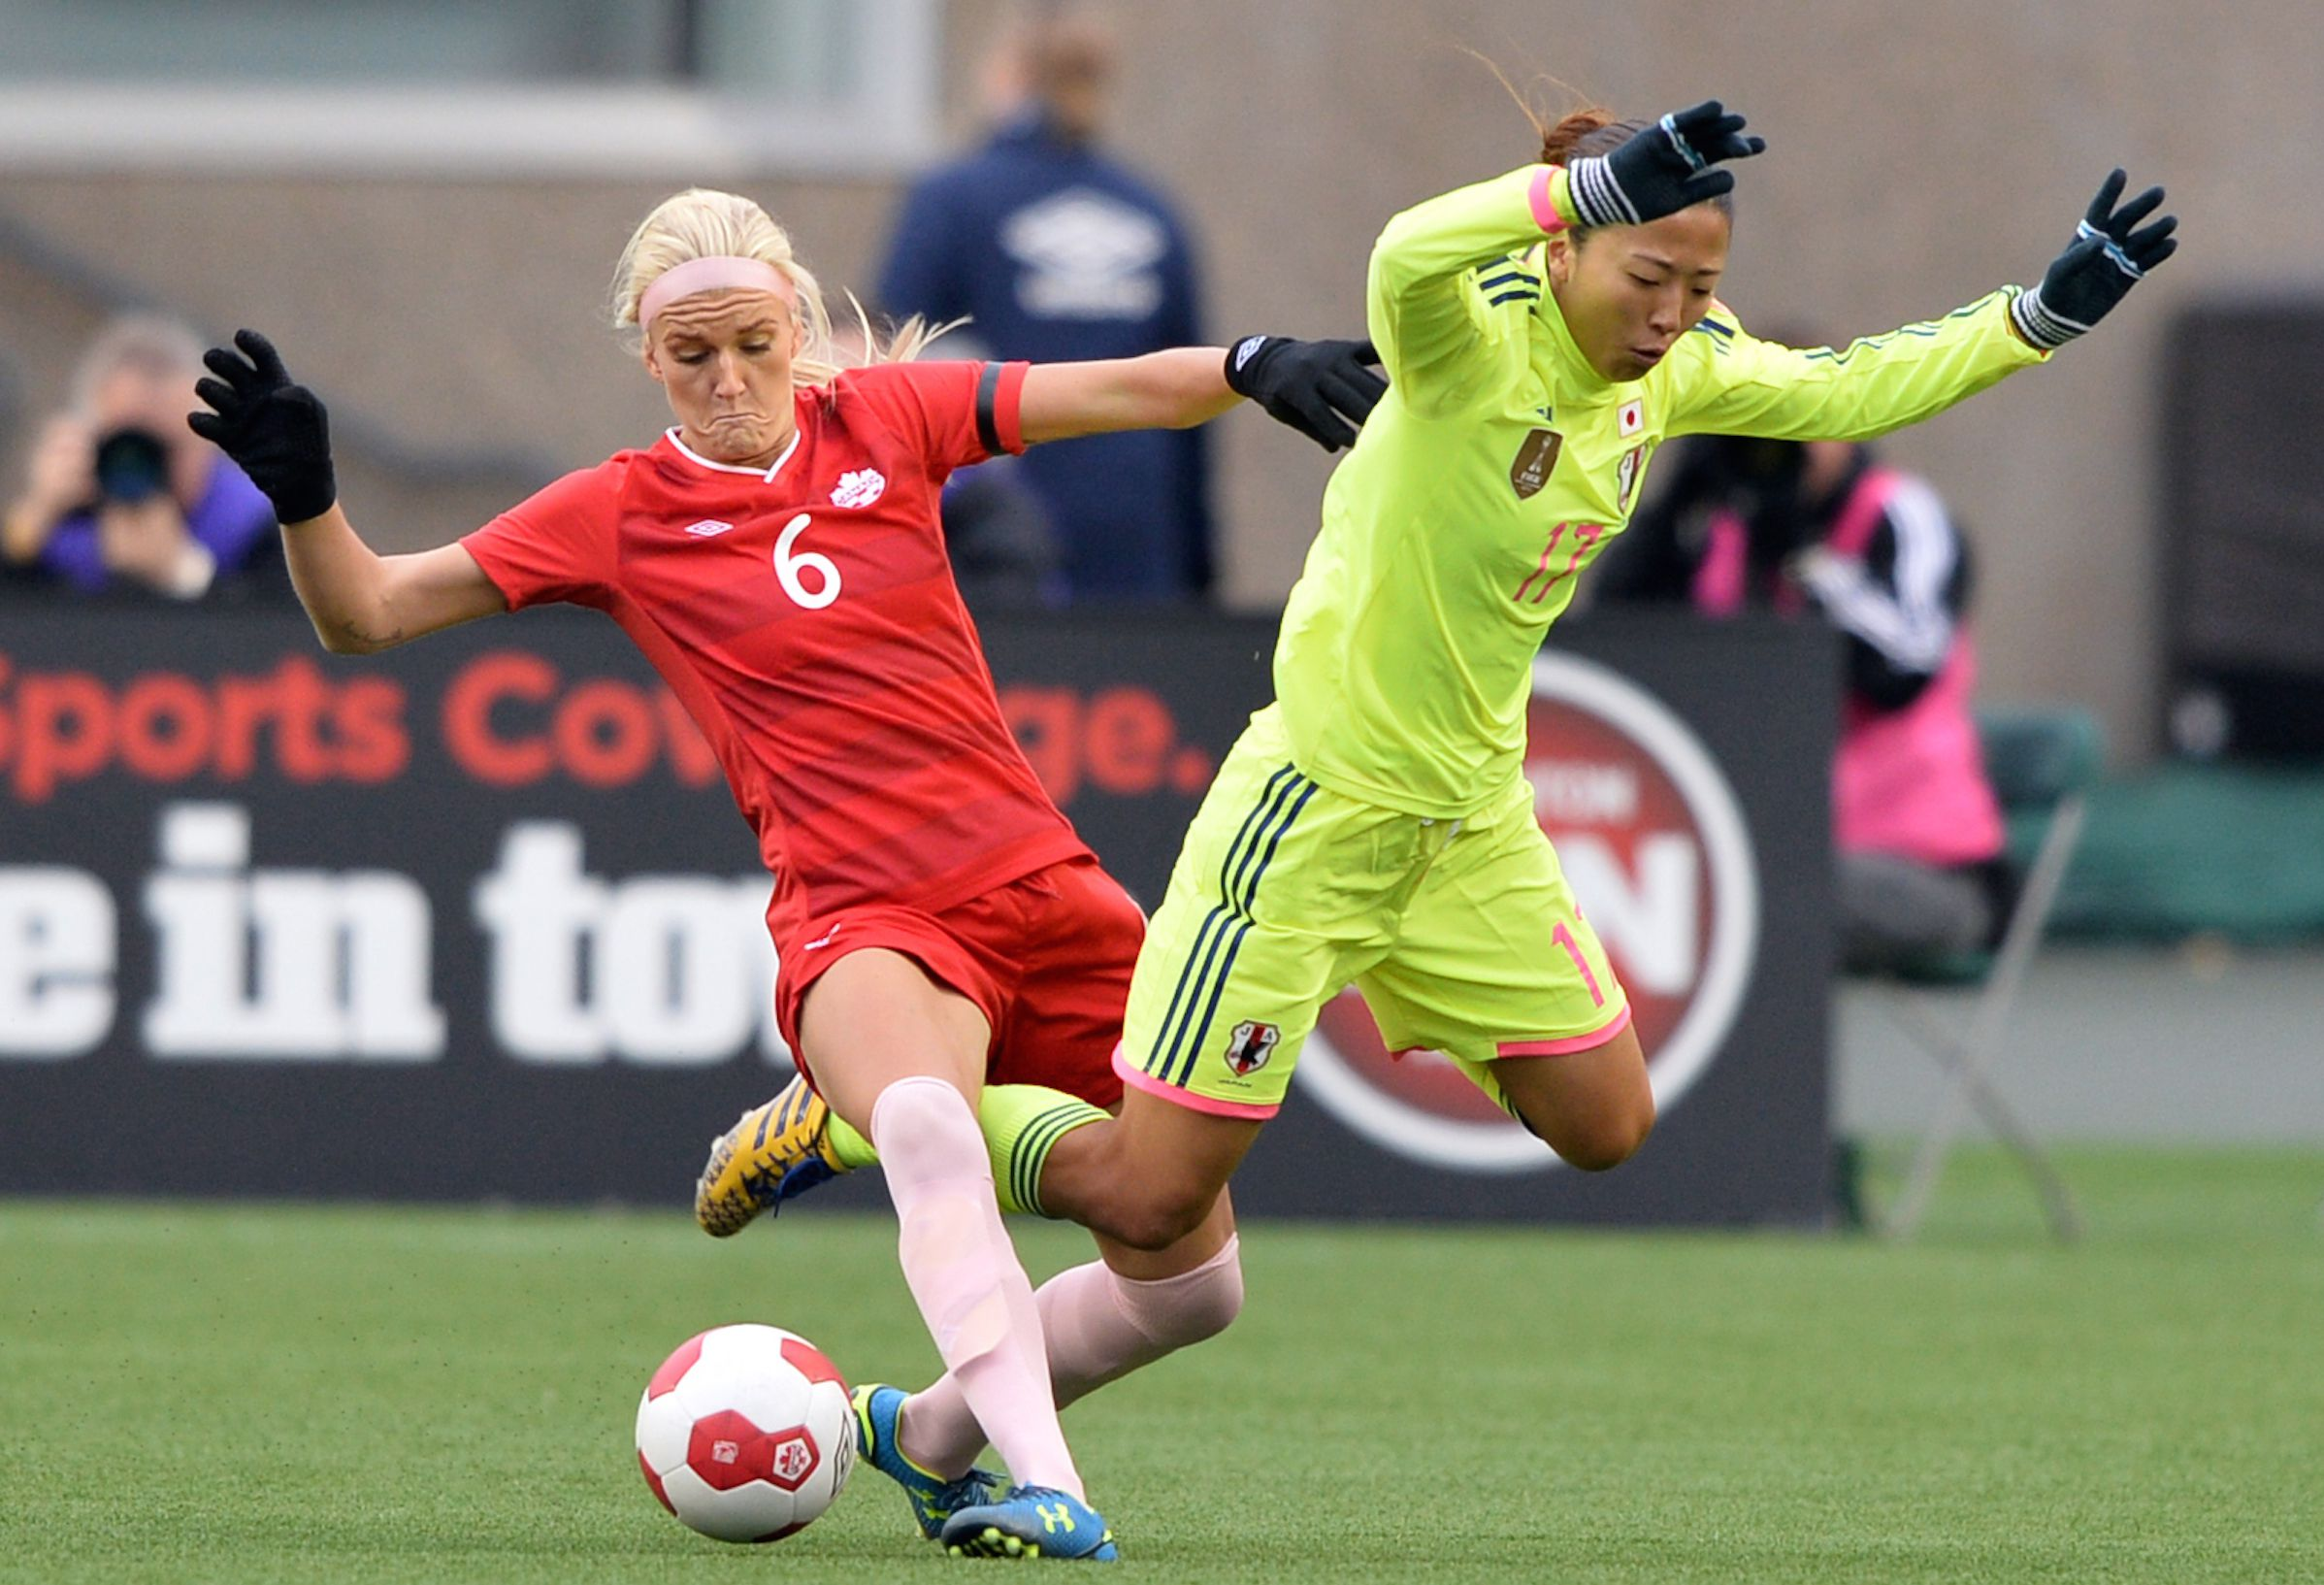 Oct 25, 2014; Edmonton, Alberta, Canada; Canada Kaylyn Kyle (6) knocks over Japan player Ogimi Yuki (17) in the first half at Commonwealth Stadium. Mandatory Credit: Chris LaFrance-USA TODAY Sports - RTR4BL6D